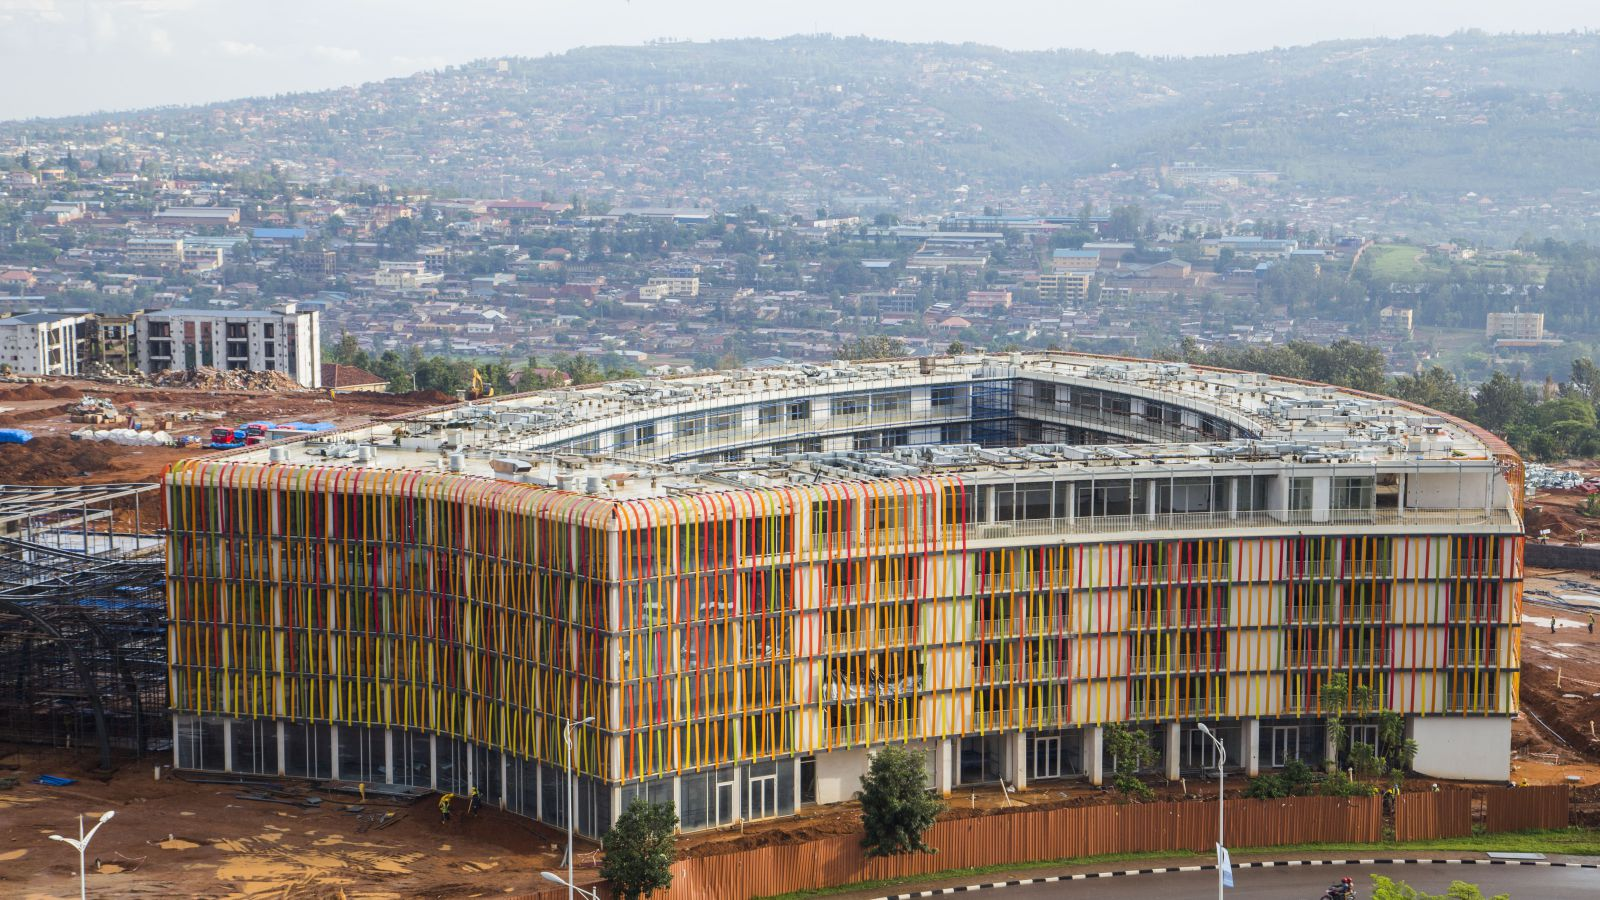 kigali convention center under construction 5